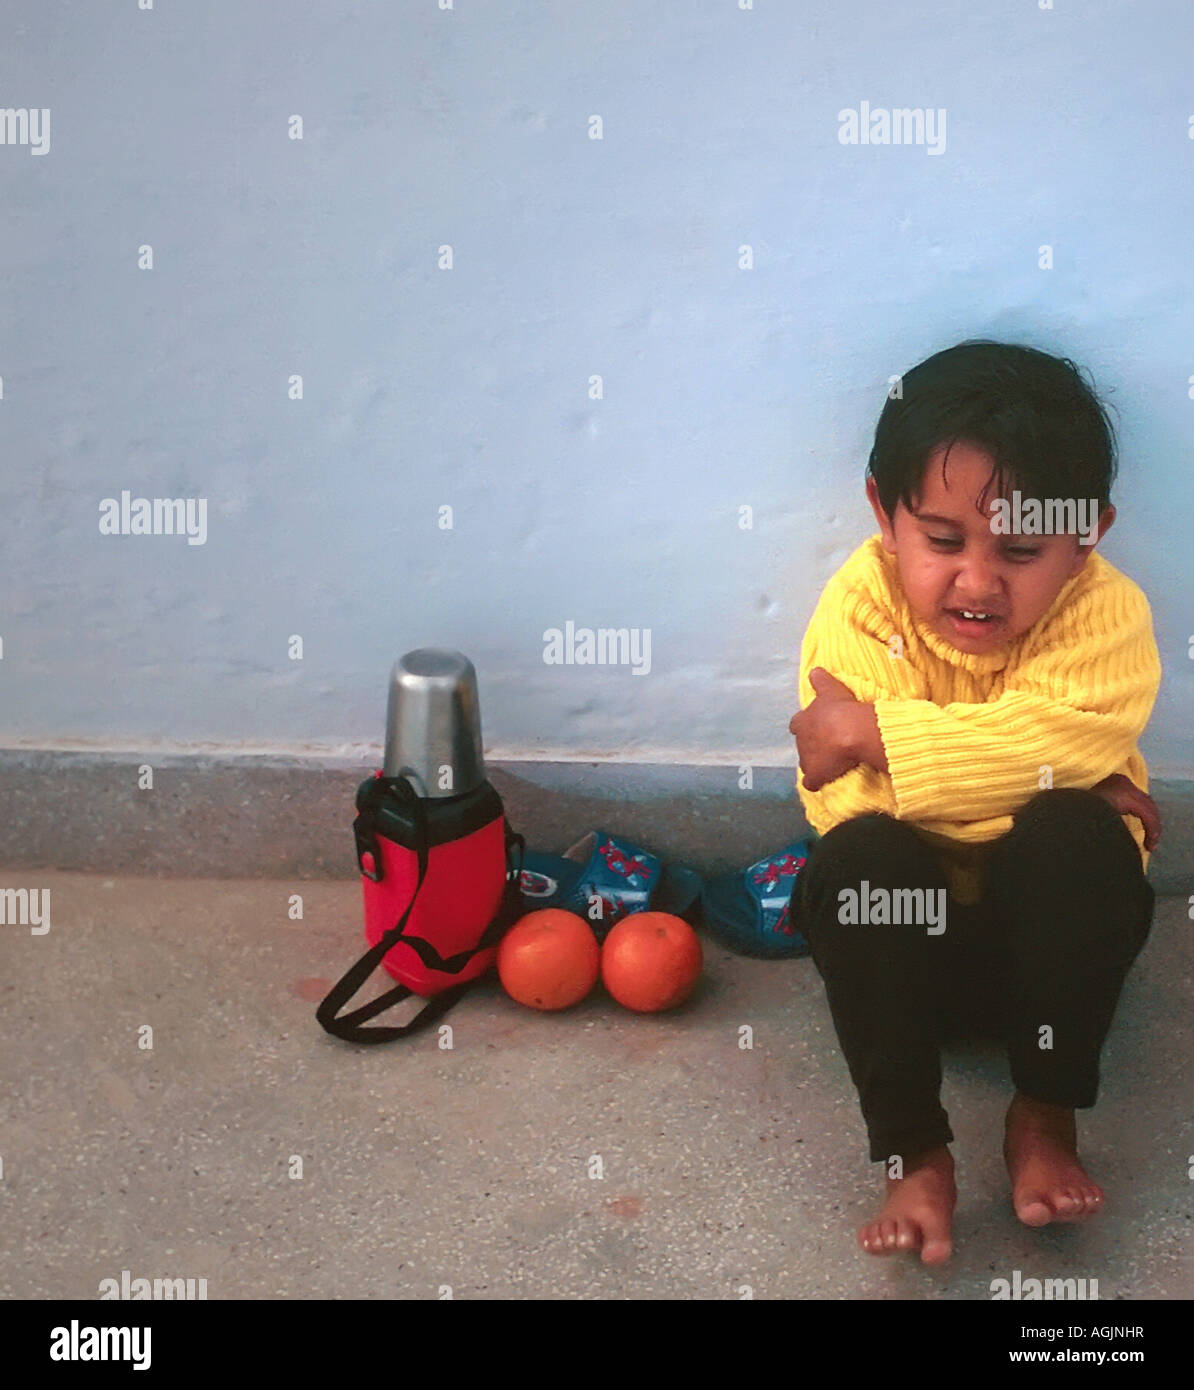 Painet jm7688 indian india kid young school girl child sitting sad unhappy angry water bottle waterbottle oranges - Stock Image